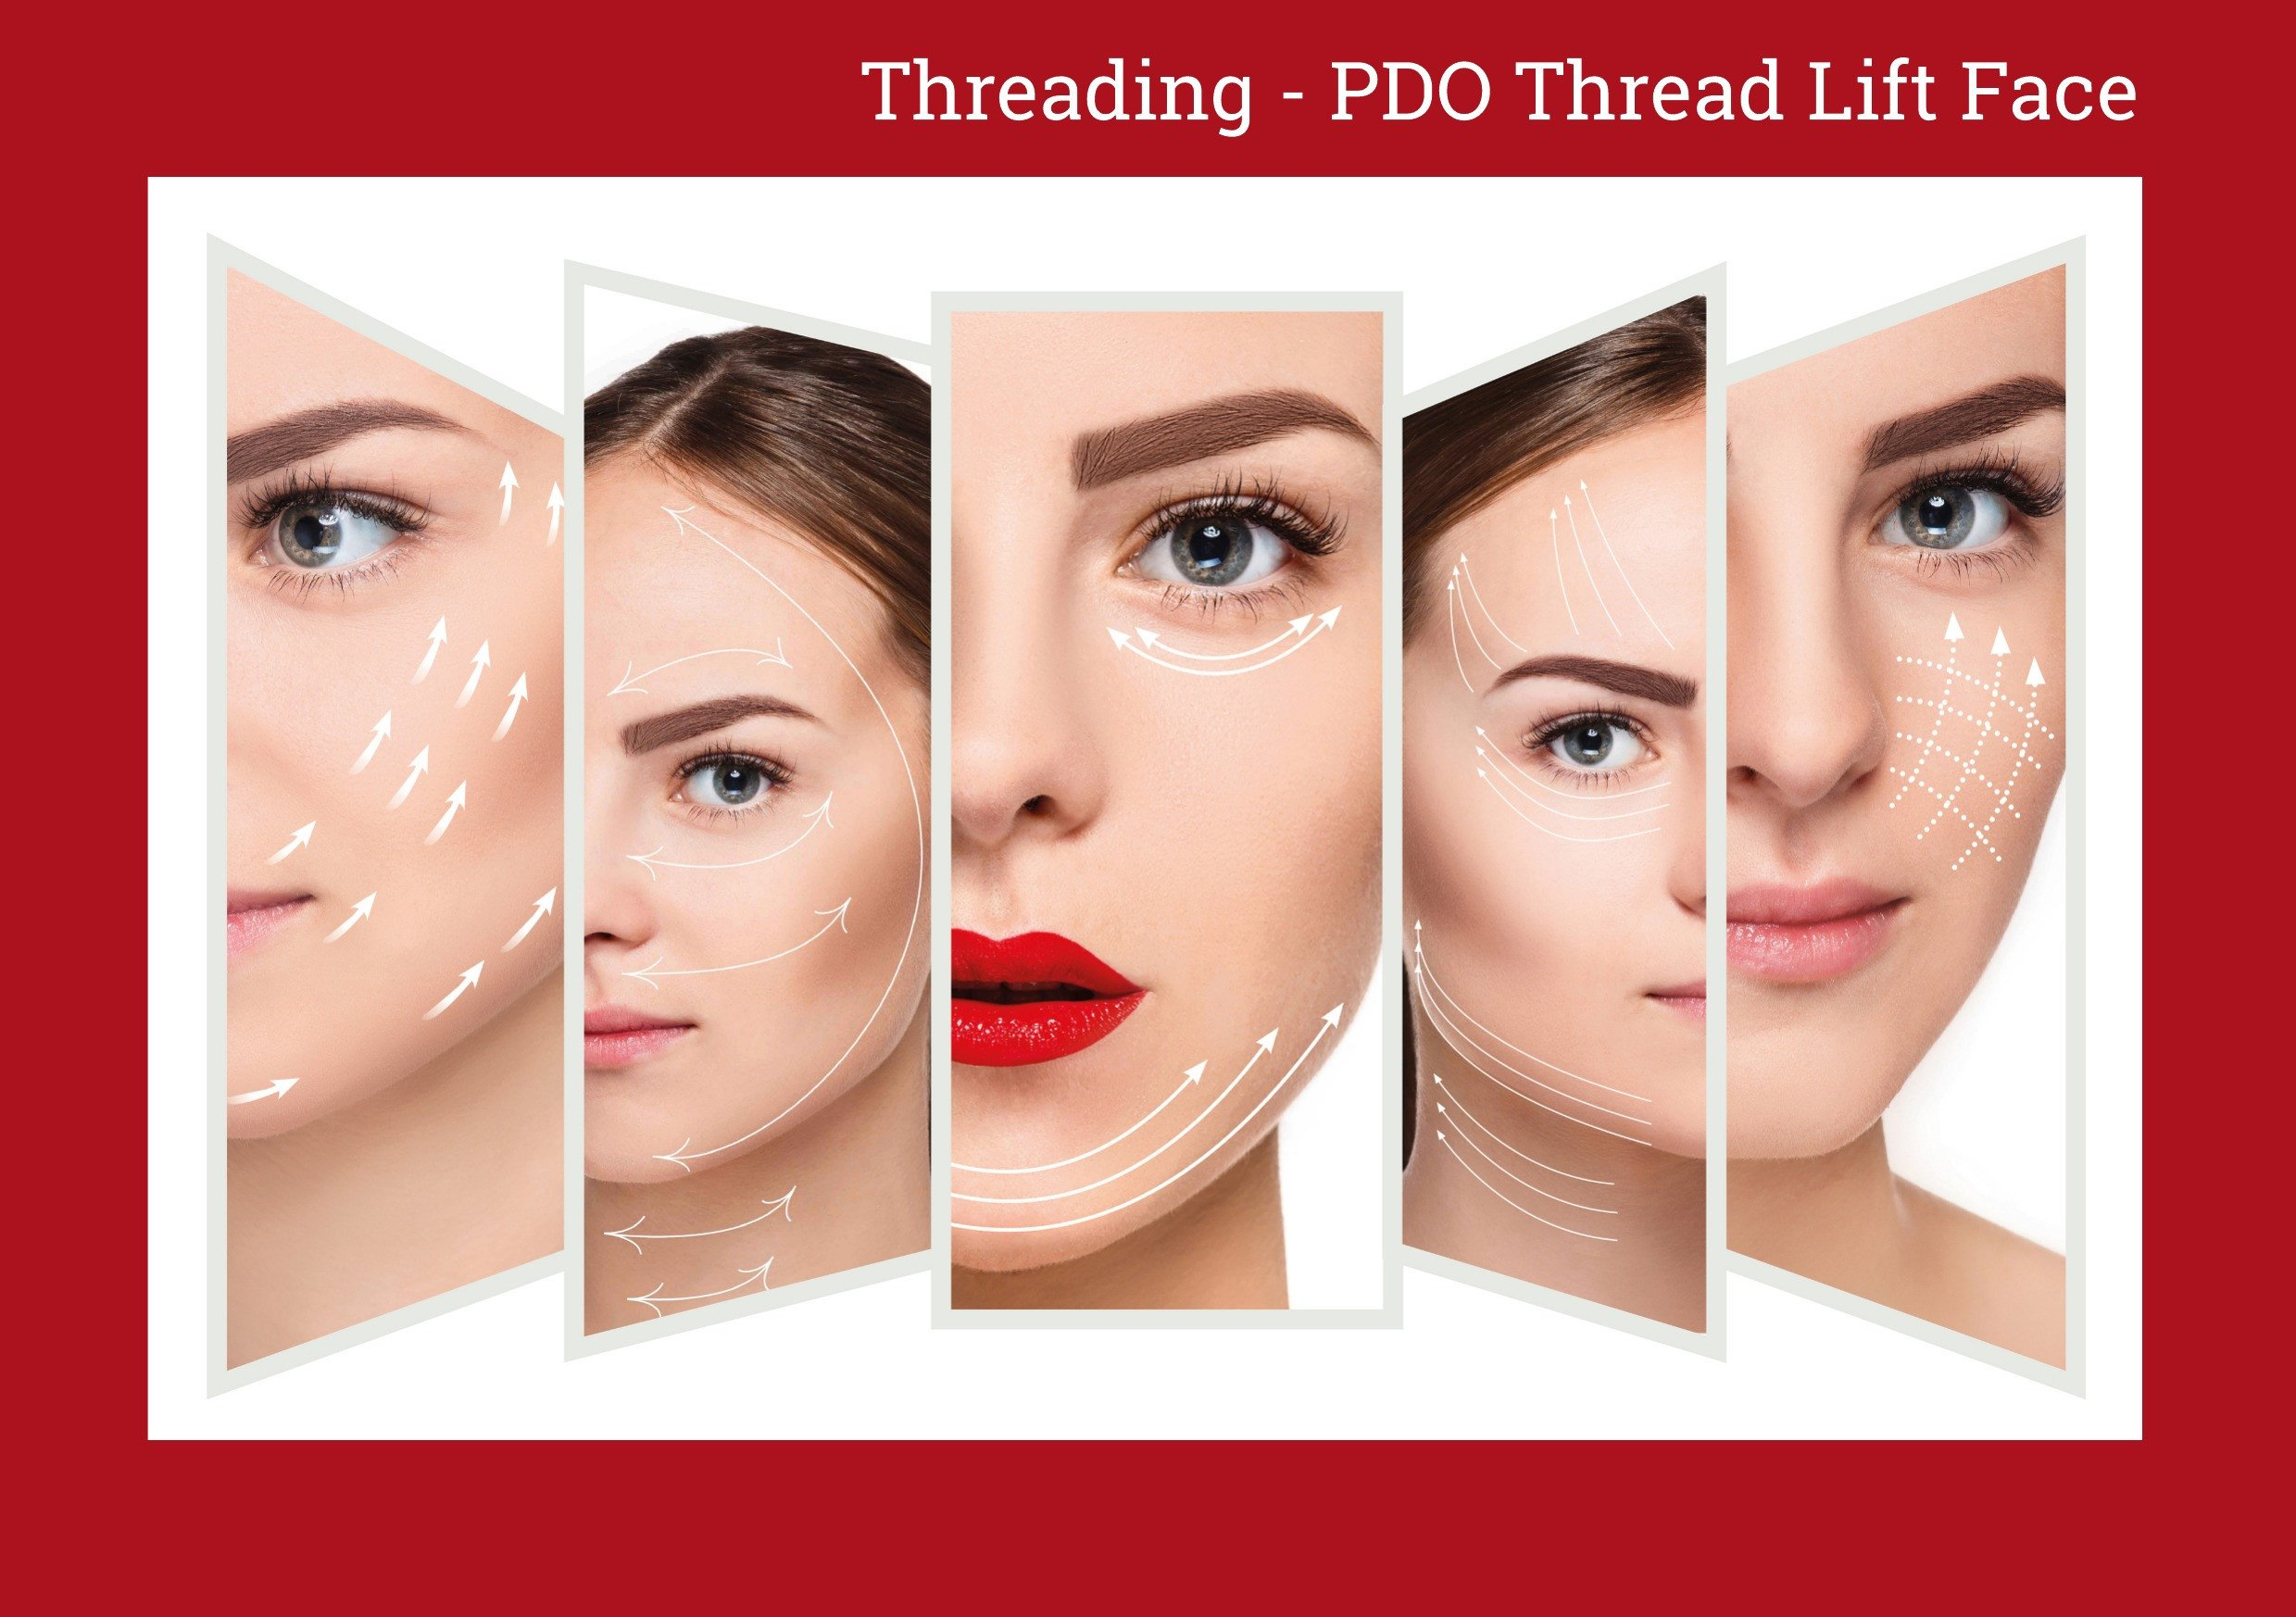 New Uses For PDO Threads